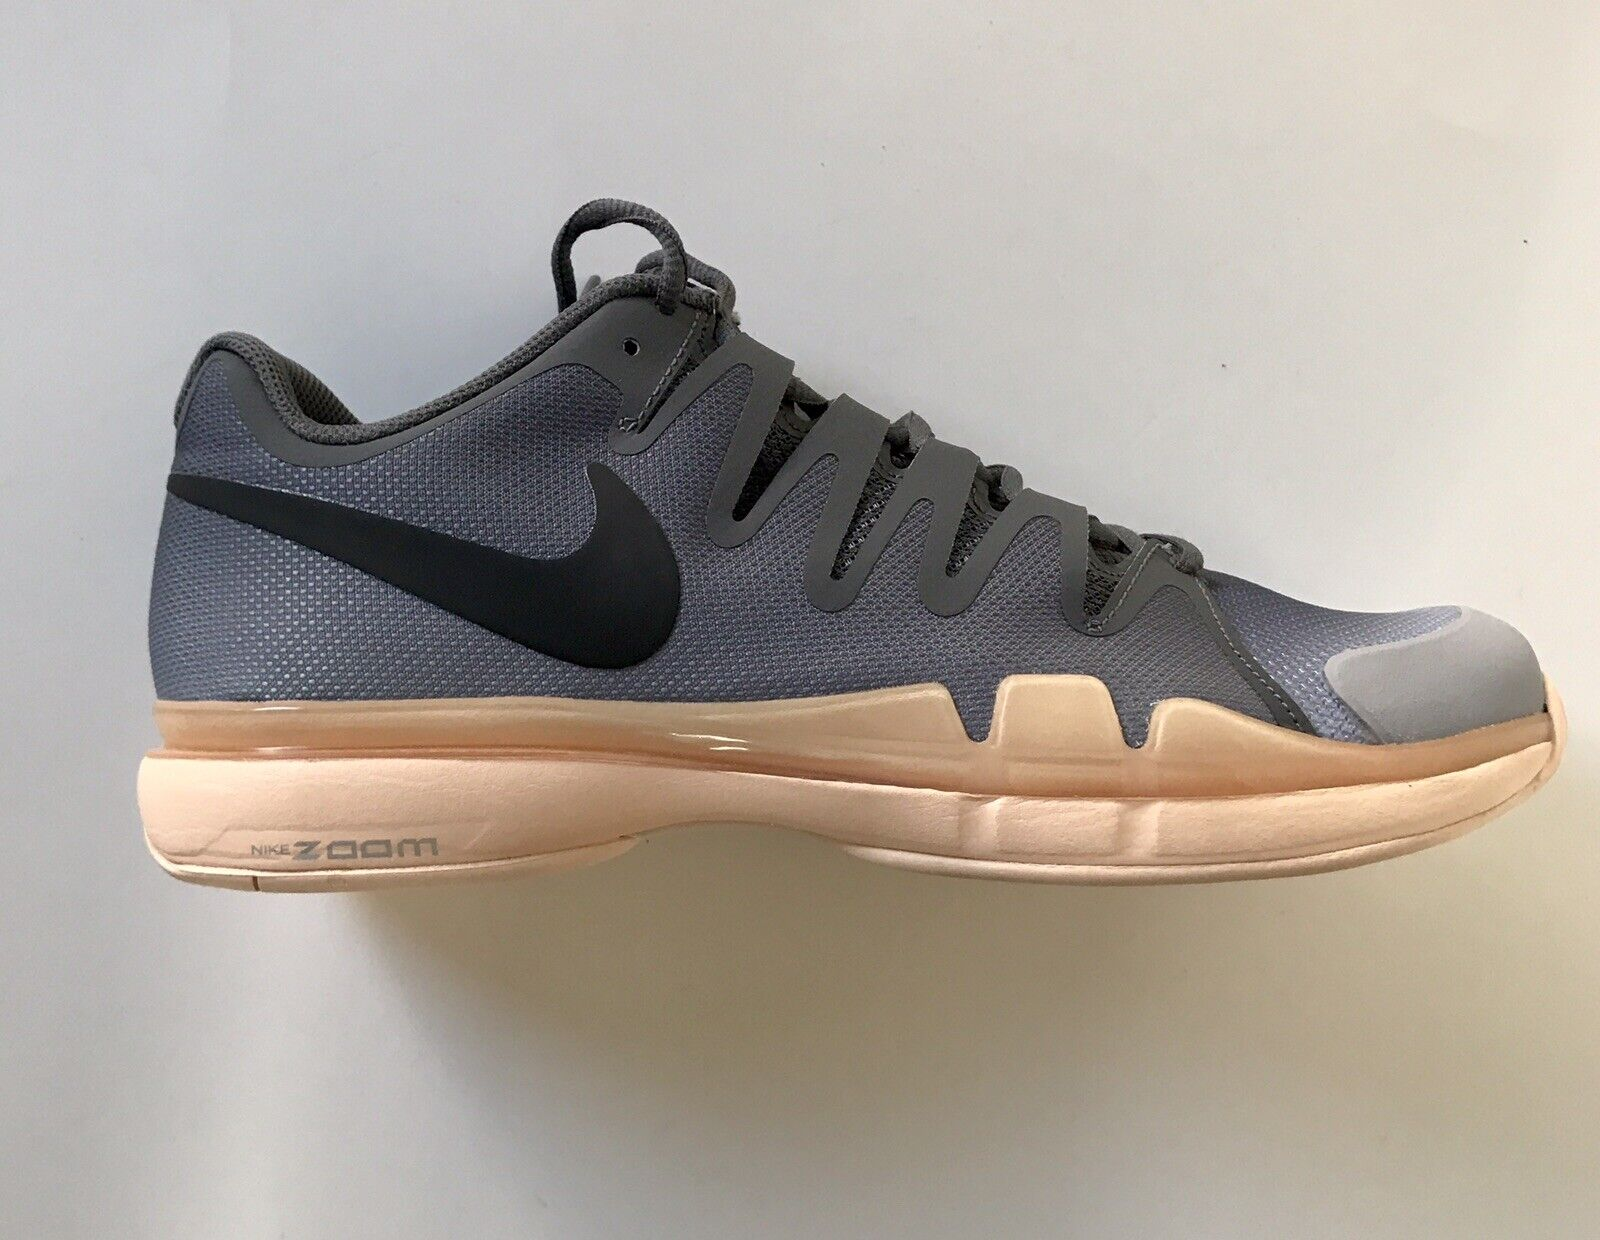 Nike Zoom Vapor 9.5 Tour Women's shoes 631475-004 SZ-10.5 Brand New